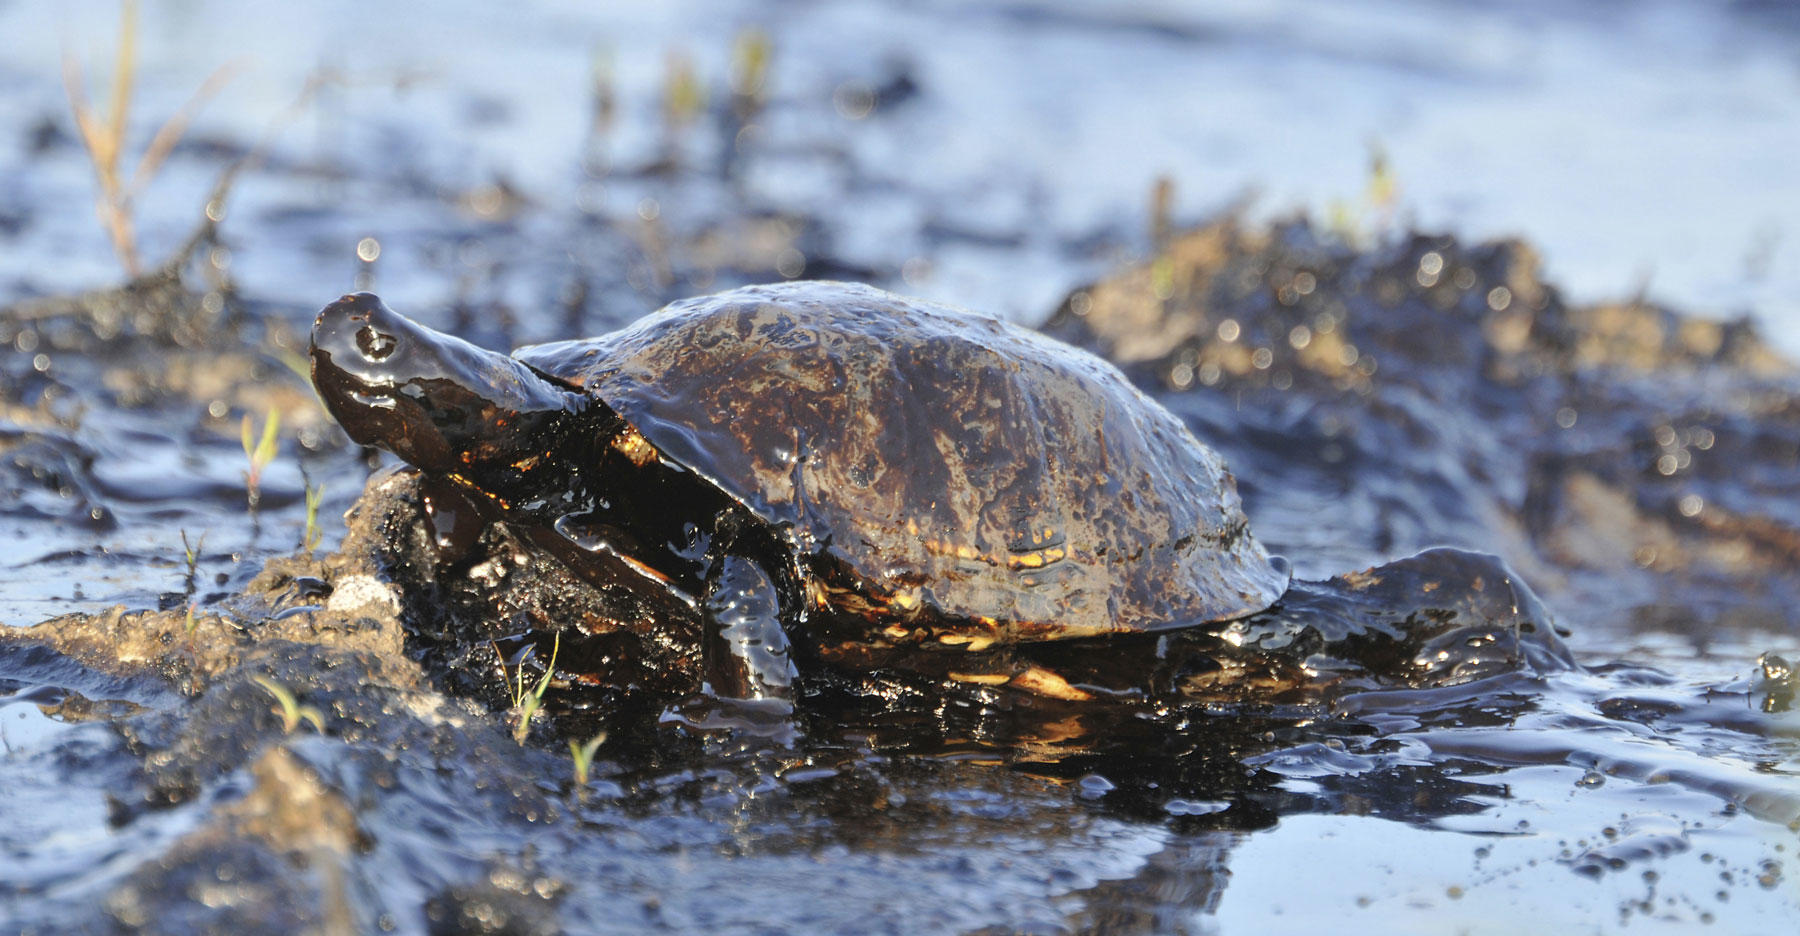 Turtle covered in oil